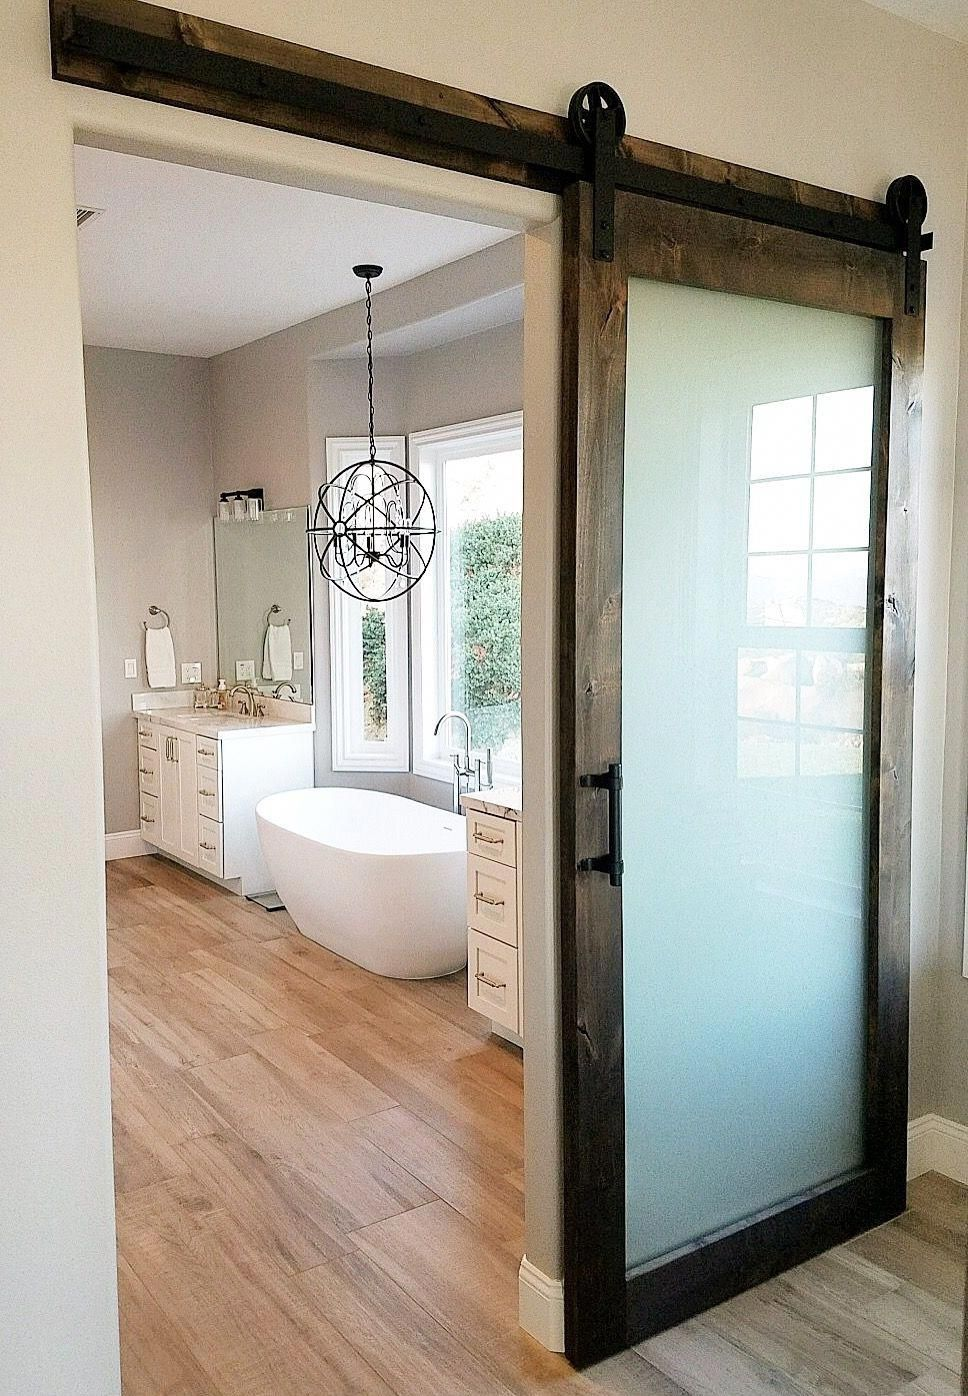 Frosted Glass Knotty Alder Barn Door With Hardware For A Master